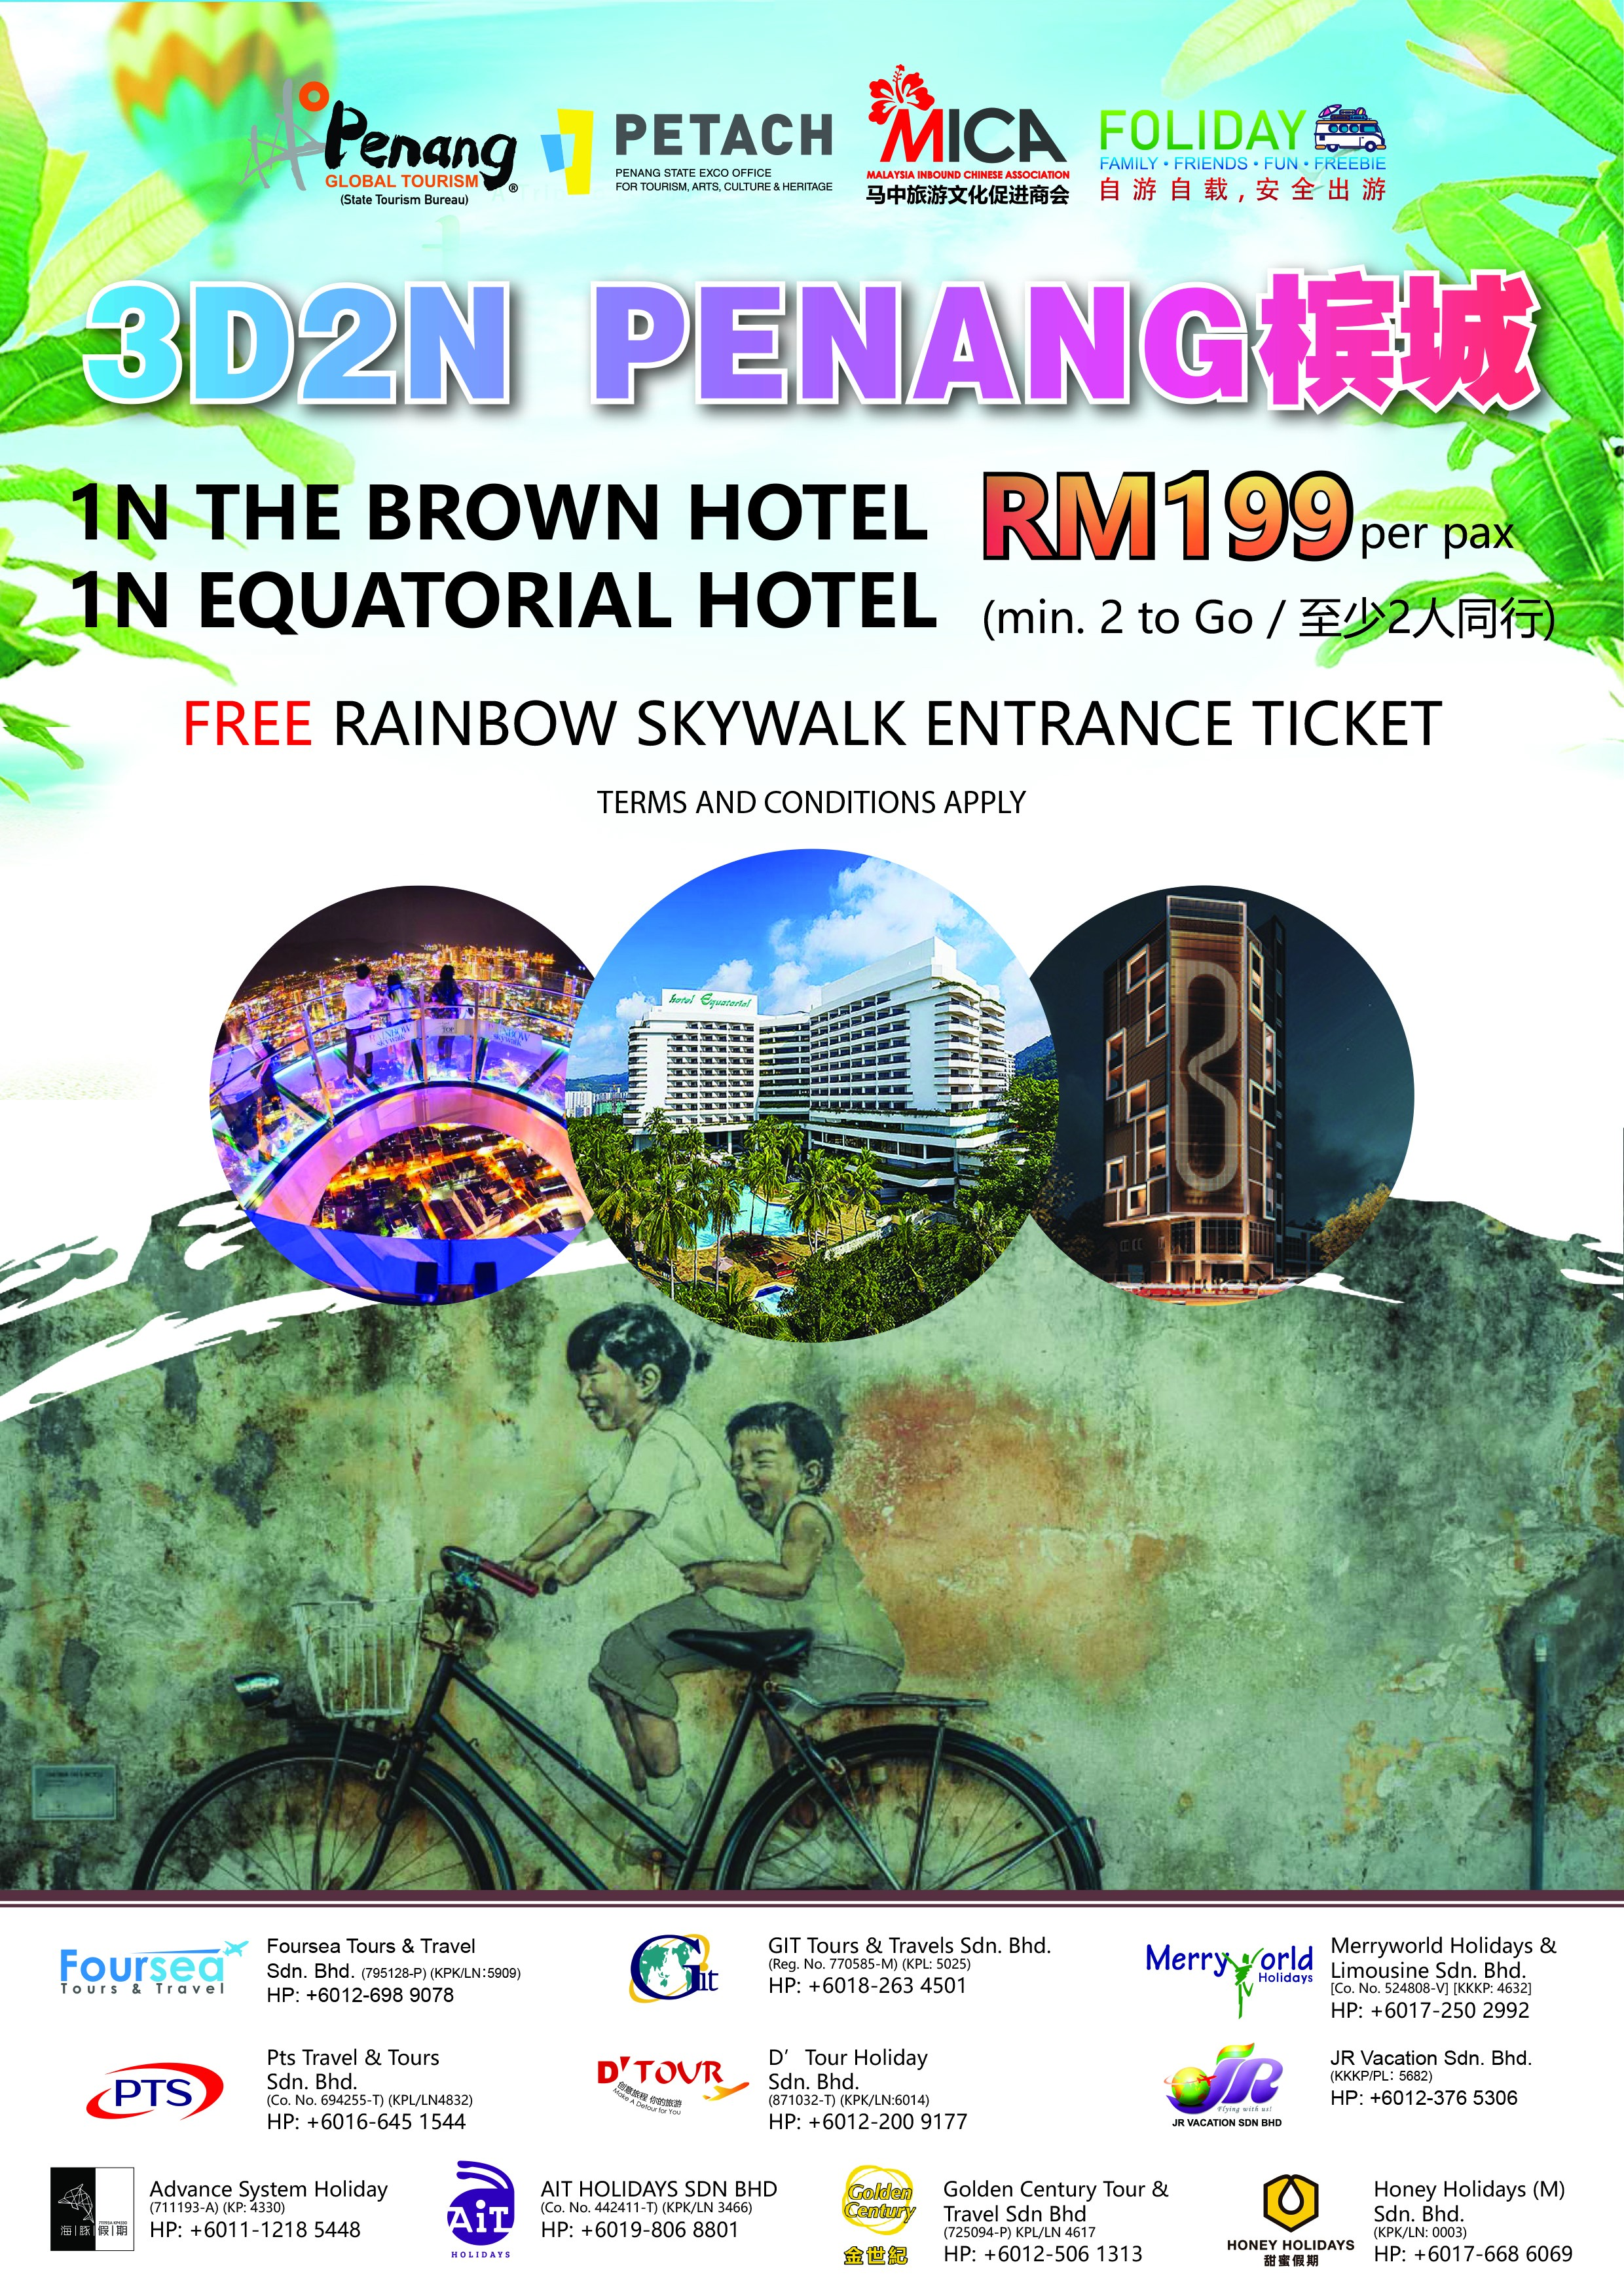 3D2N Penang - 1N The Brown Hotel & 1N Equatorial Hotel